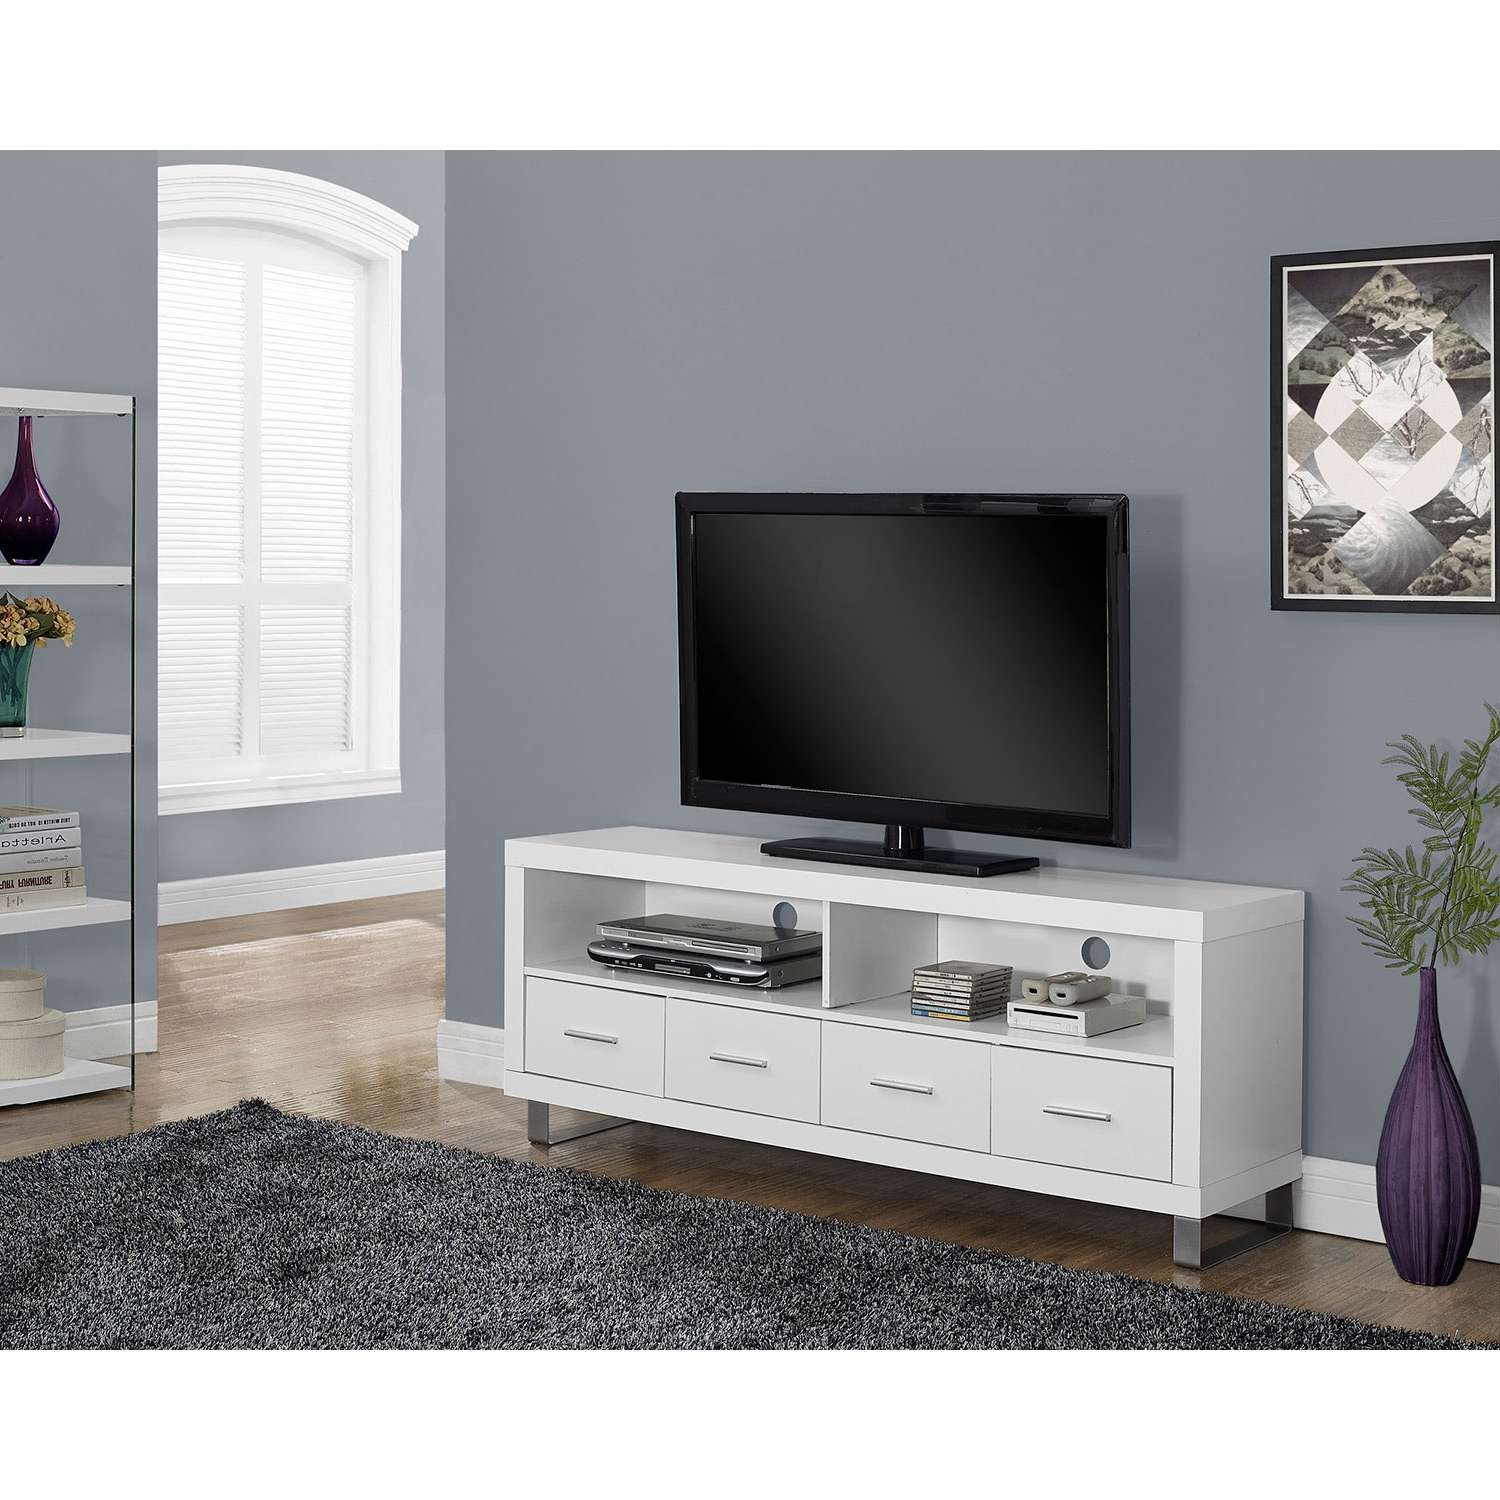 "Monarch Tv Stand For Tvs Up To 60"" – White : Tv Stands – Best Buy Intended For White Tv Stands (View 12 of 15)"